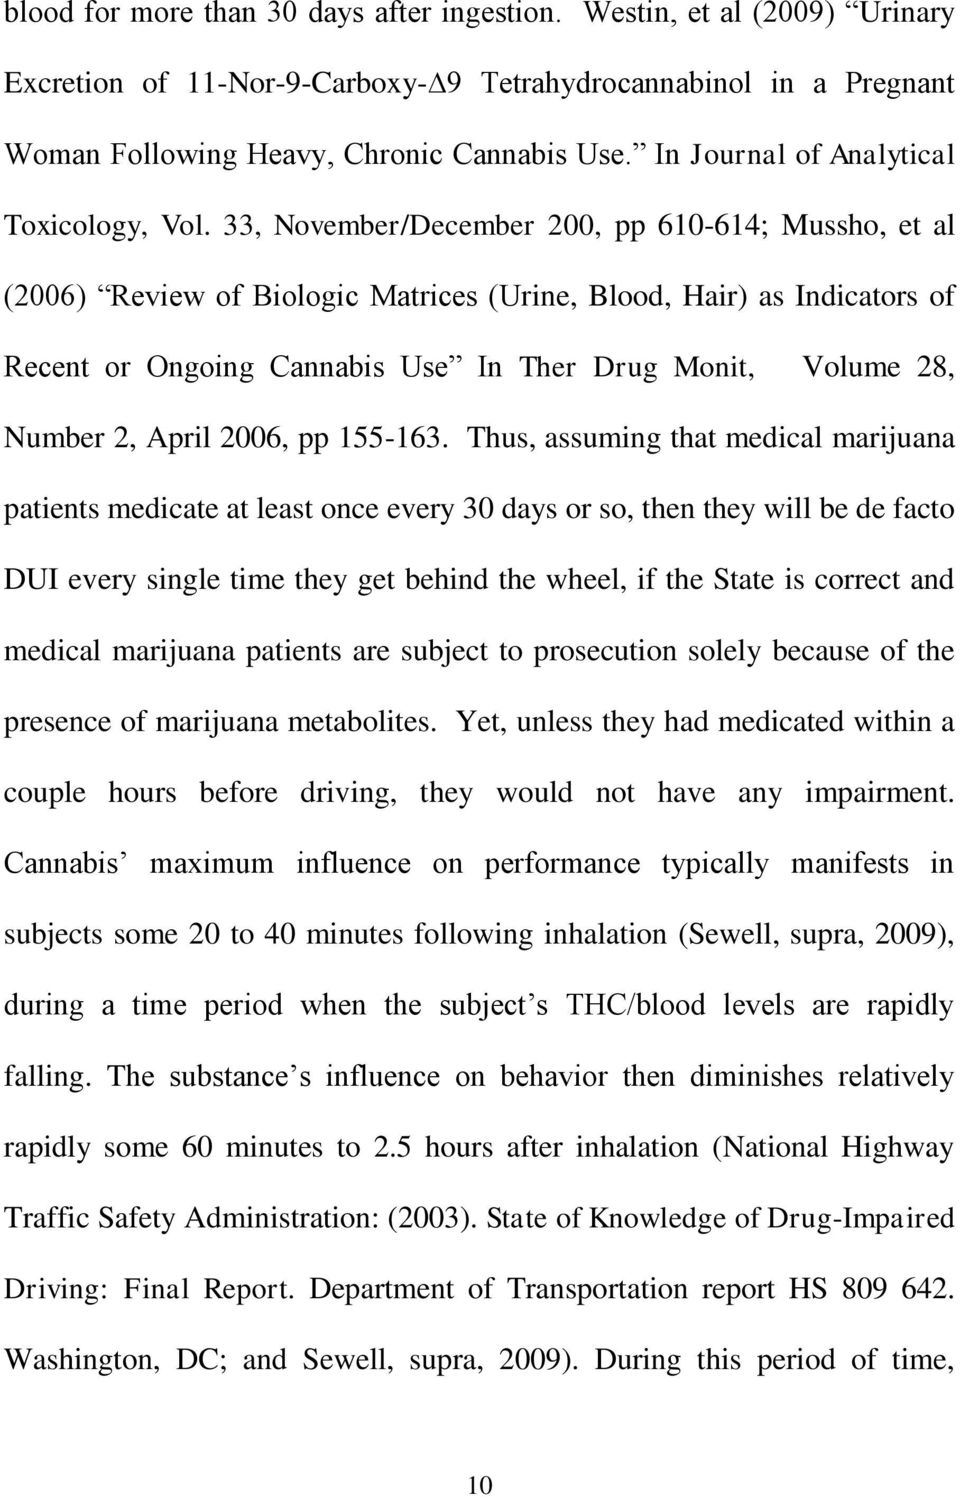 33, November/December 200, pp 610-614; Mussho, et al (2006 Review of Biologic Matrices (Urine, Blood, Hair as Indicators of Recent or Ongoing Cannabis Use In Ther Drug Monit, Volume 28, Number 2,